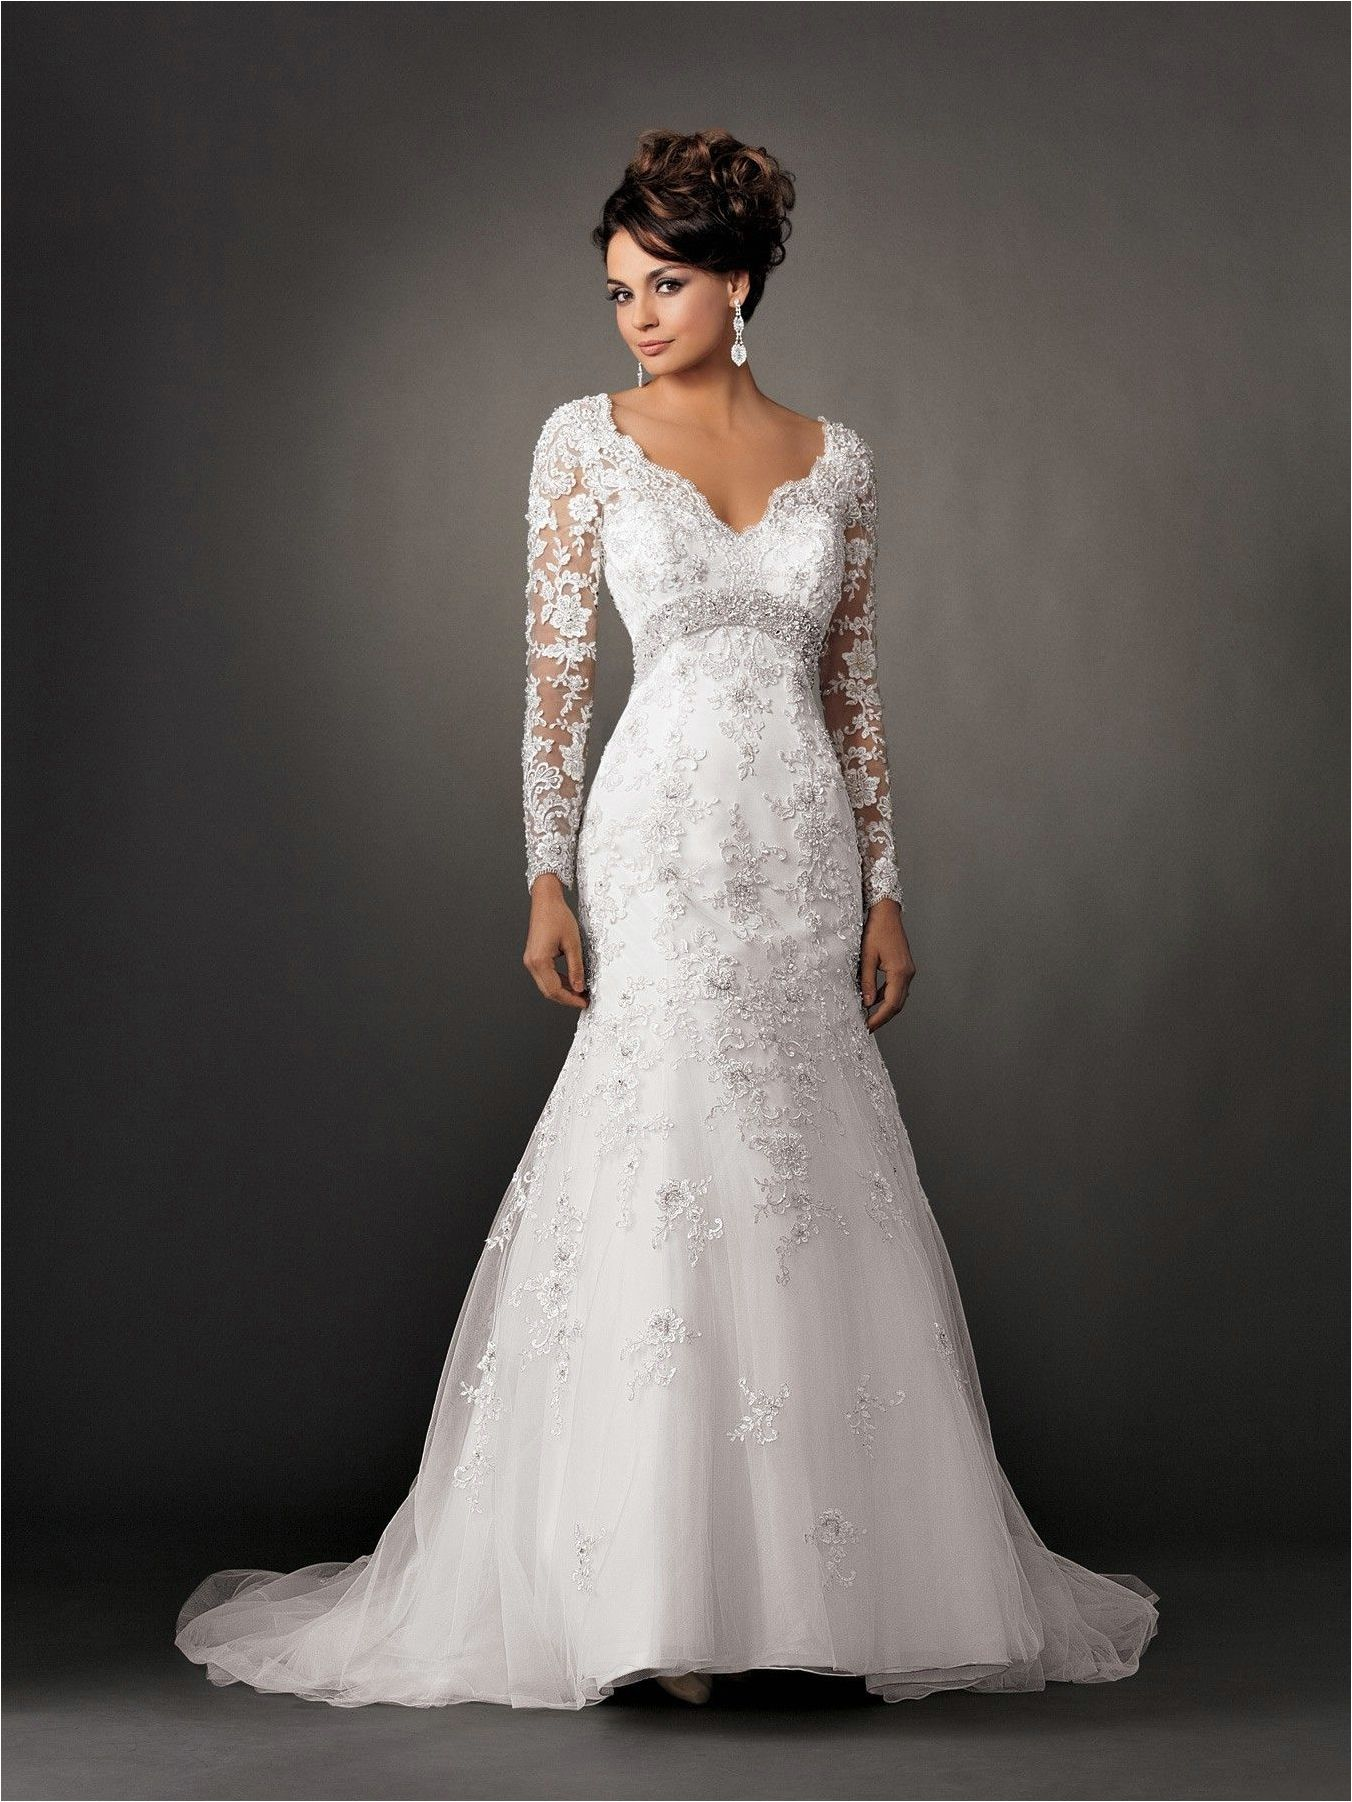 Wedding dresses simple look for your dream wedding outfit among the